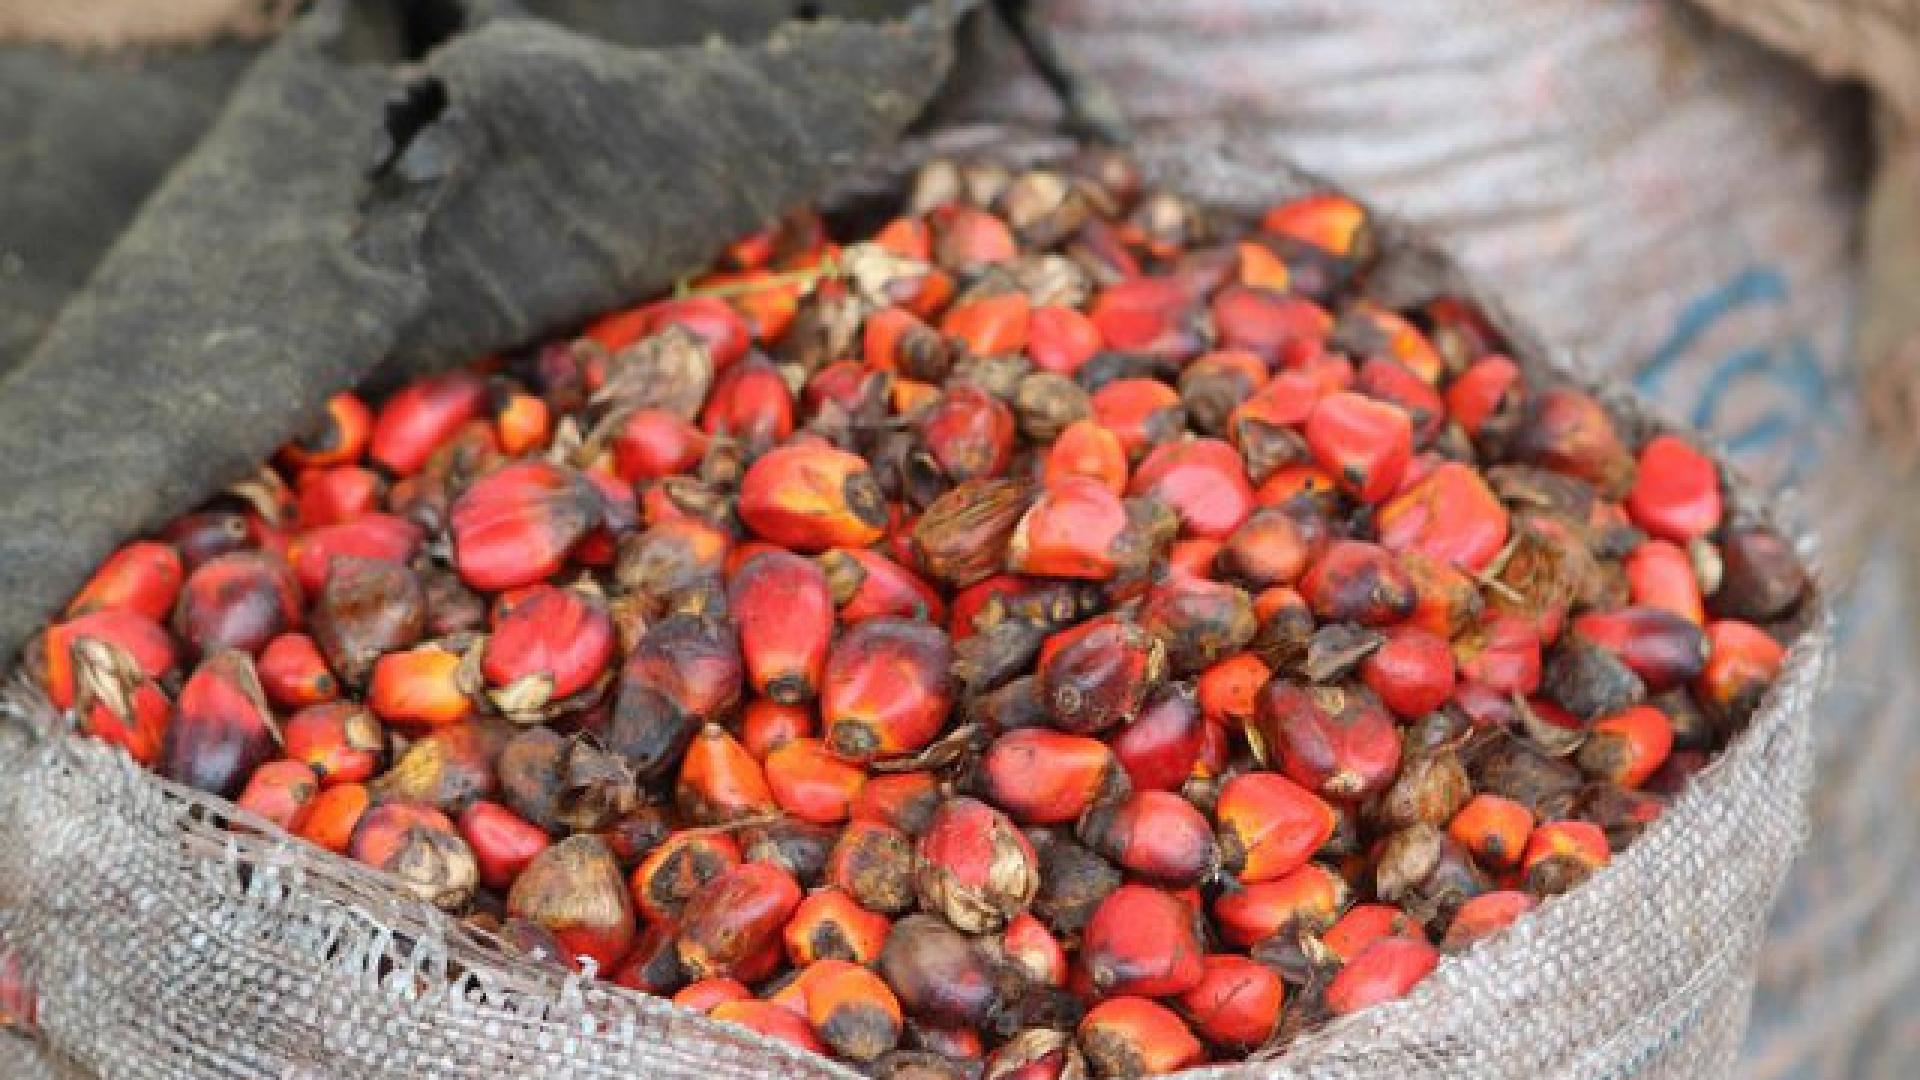 photo shows a sack of palm oil nuts ready for processing